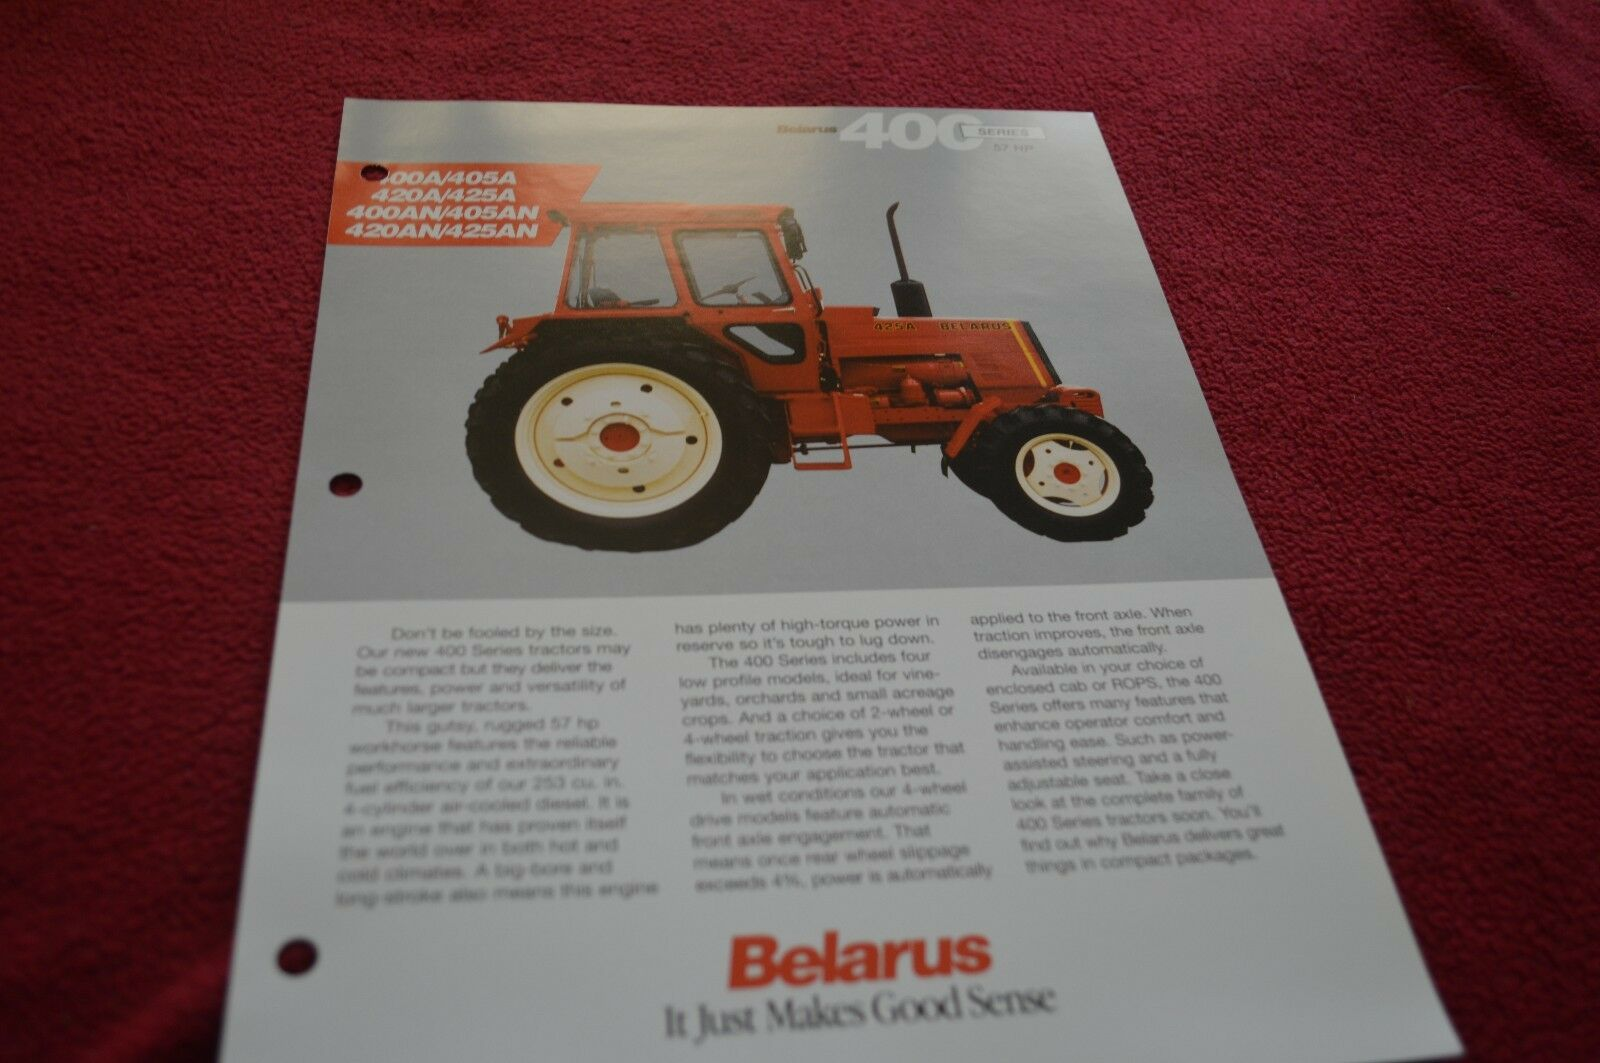 Belarus 405a Tractors Electrical Schematic Trusted Wiring Diagrams Tractor Diagram Www Topsimages Com 425